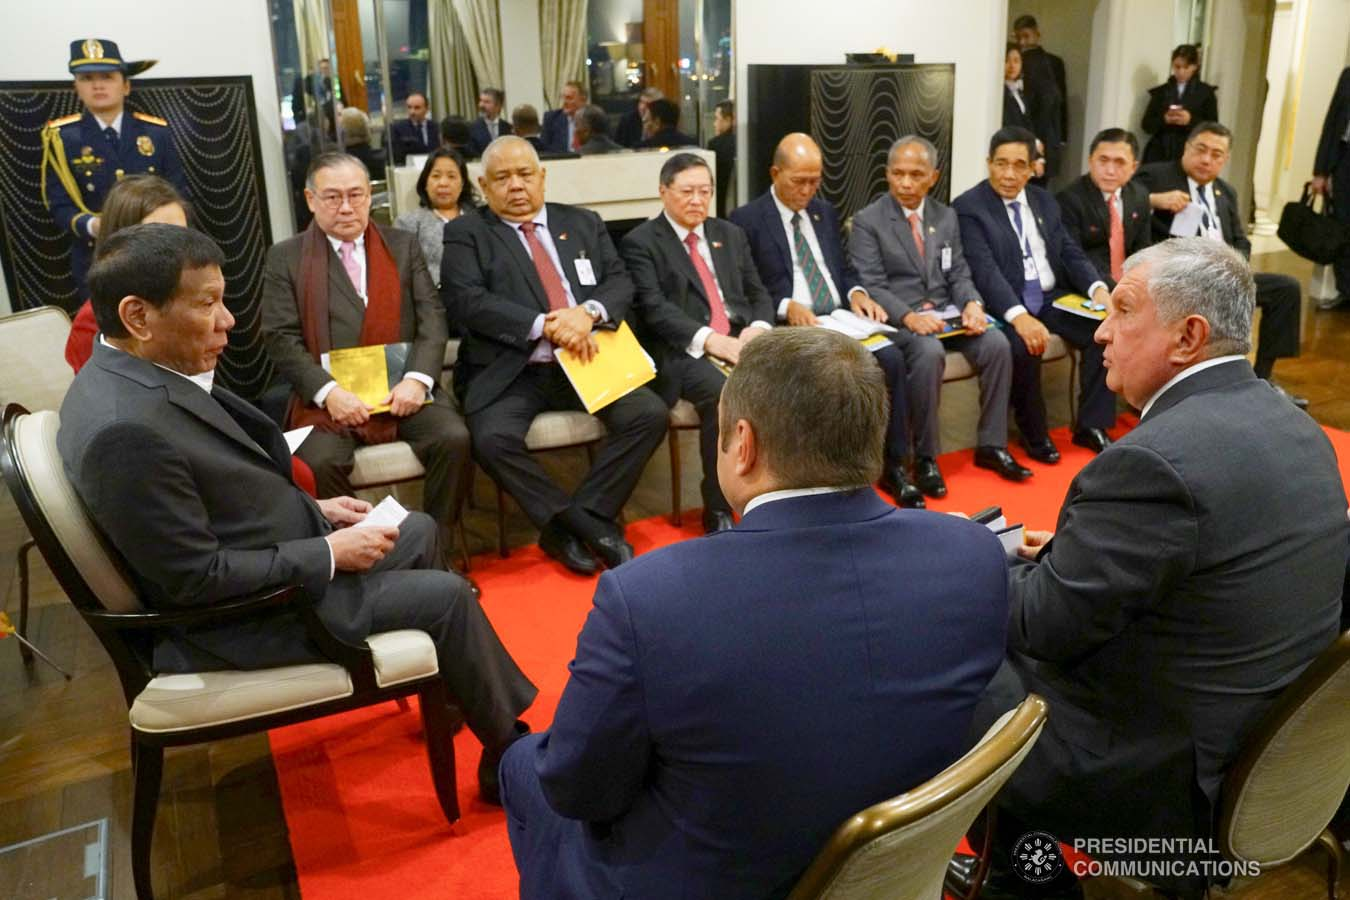 President Rodrigo Roa Duterte discusses matters with the officials of Rosneft Oil Co. led by its CEO Igor Sechin who paid a courtesy call on the President at the Four Seasons Hotel in Moscow, Russia on October 2, 2019. JOEY DALUMPINES/PRESIDENTIAL PHOTO